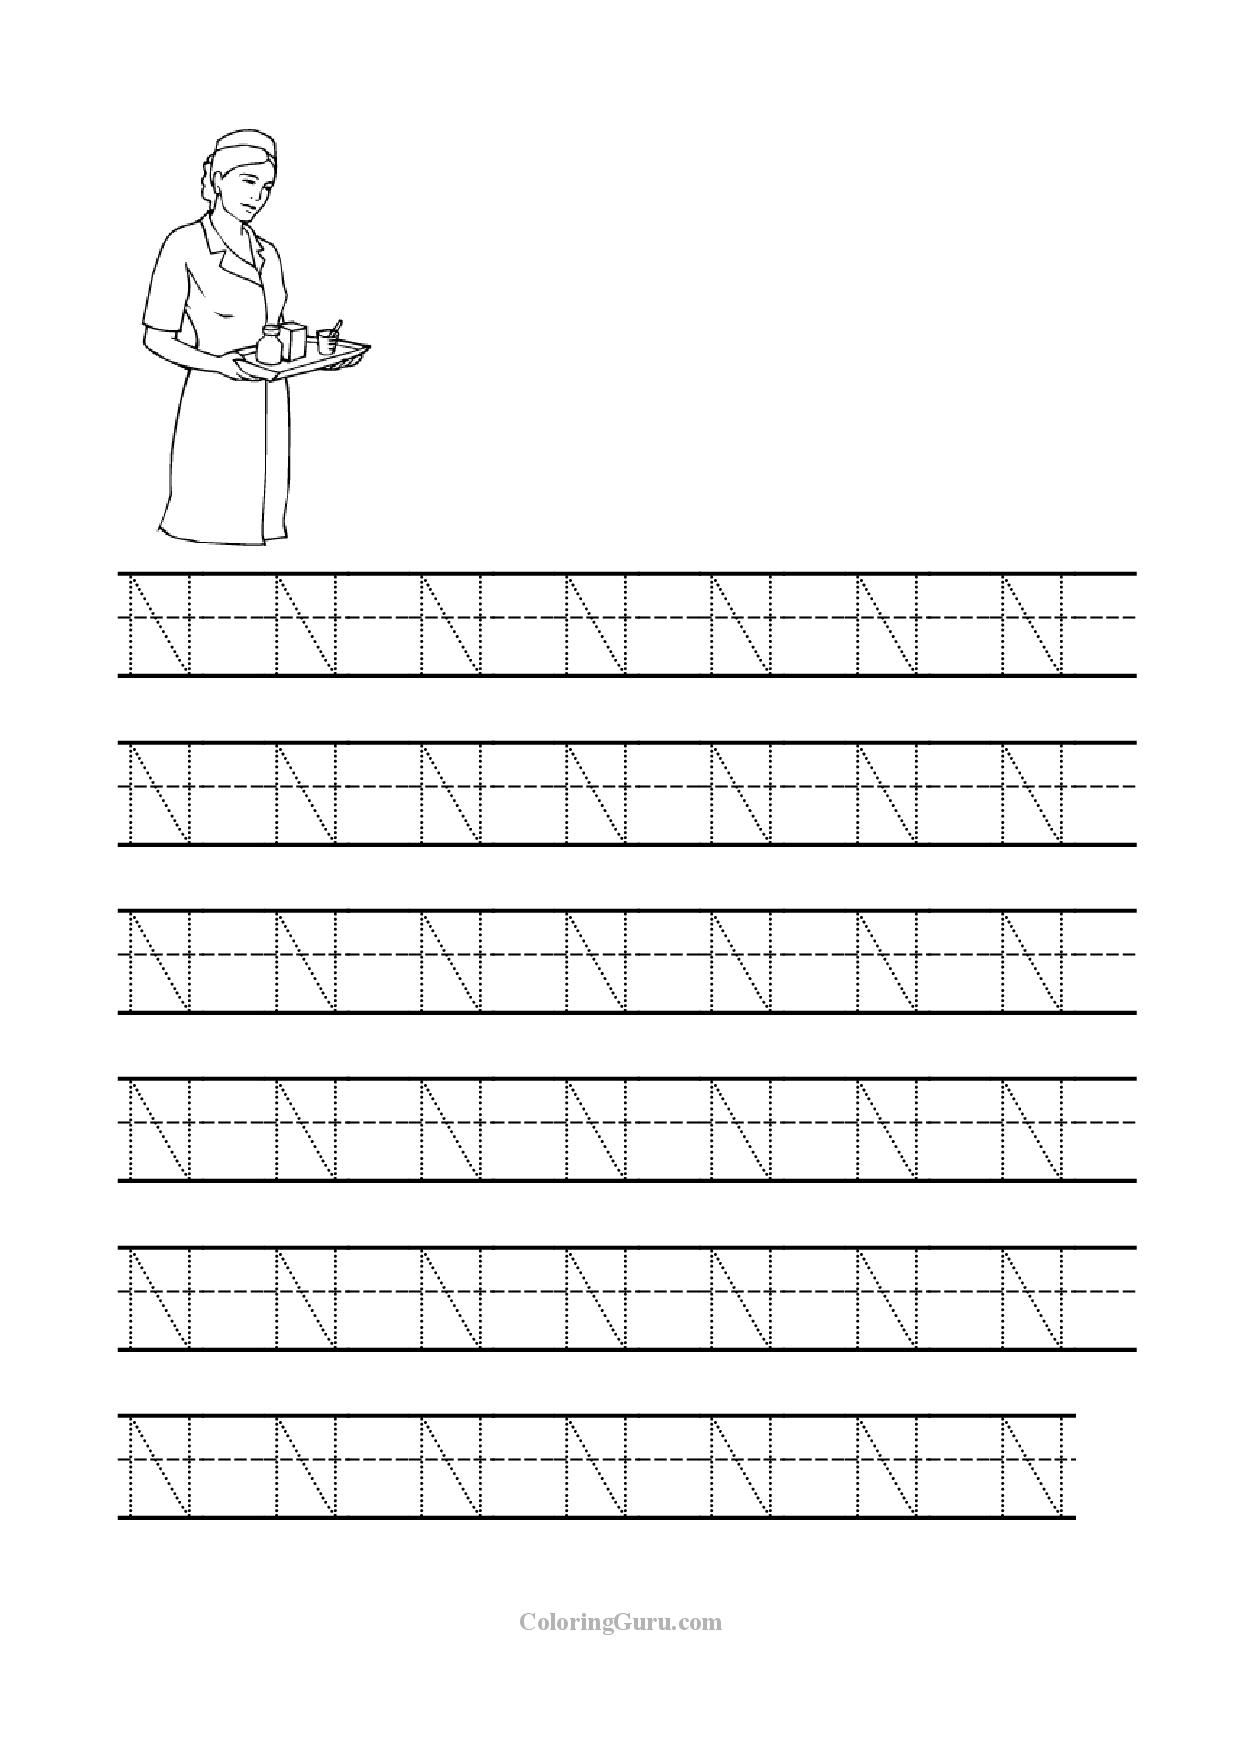 14 Interesting Letter N Worksheets For Kids